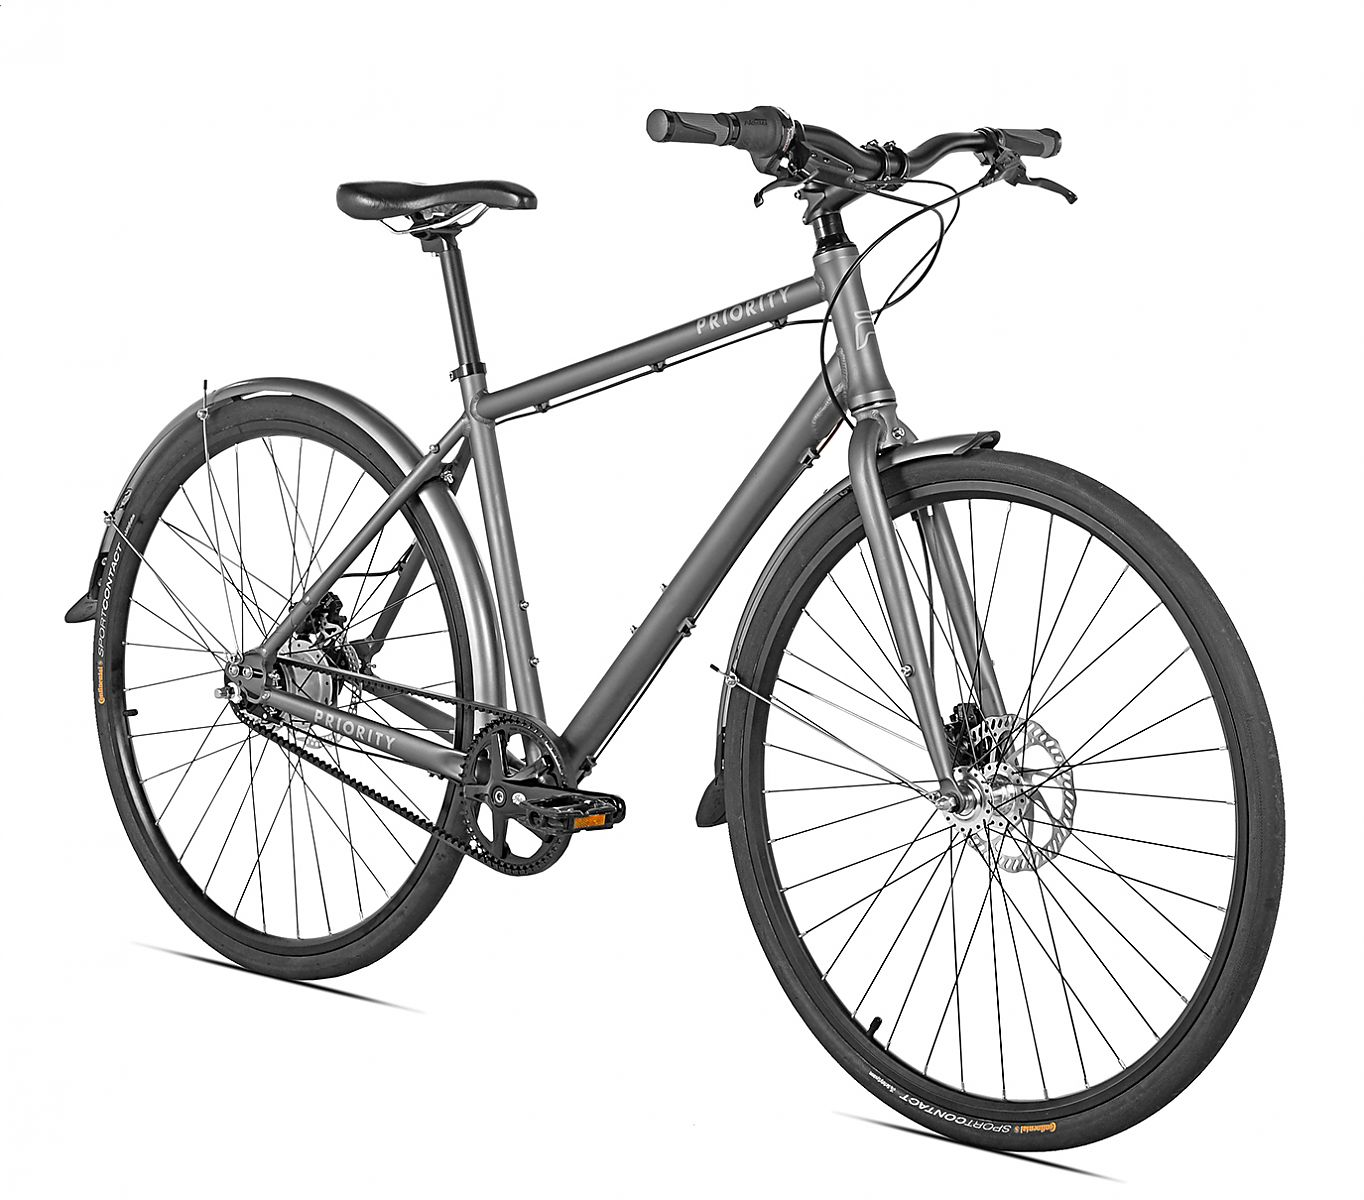 Belt Drive Bike >> Priority Bicycles Offers New Belt Drive Bike Retailing For 800